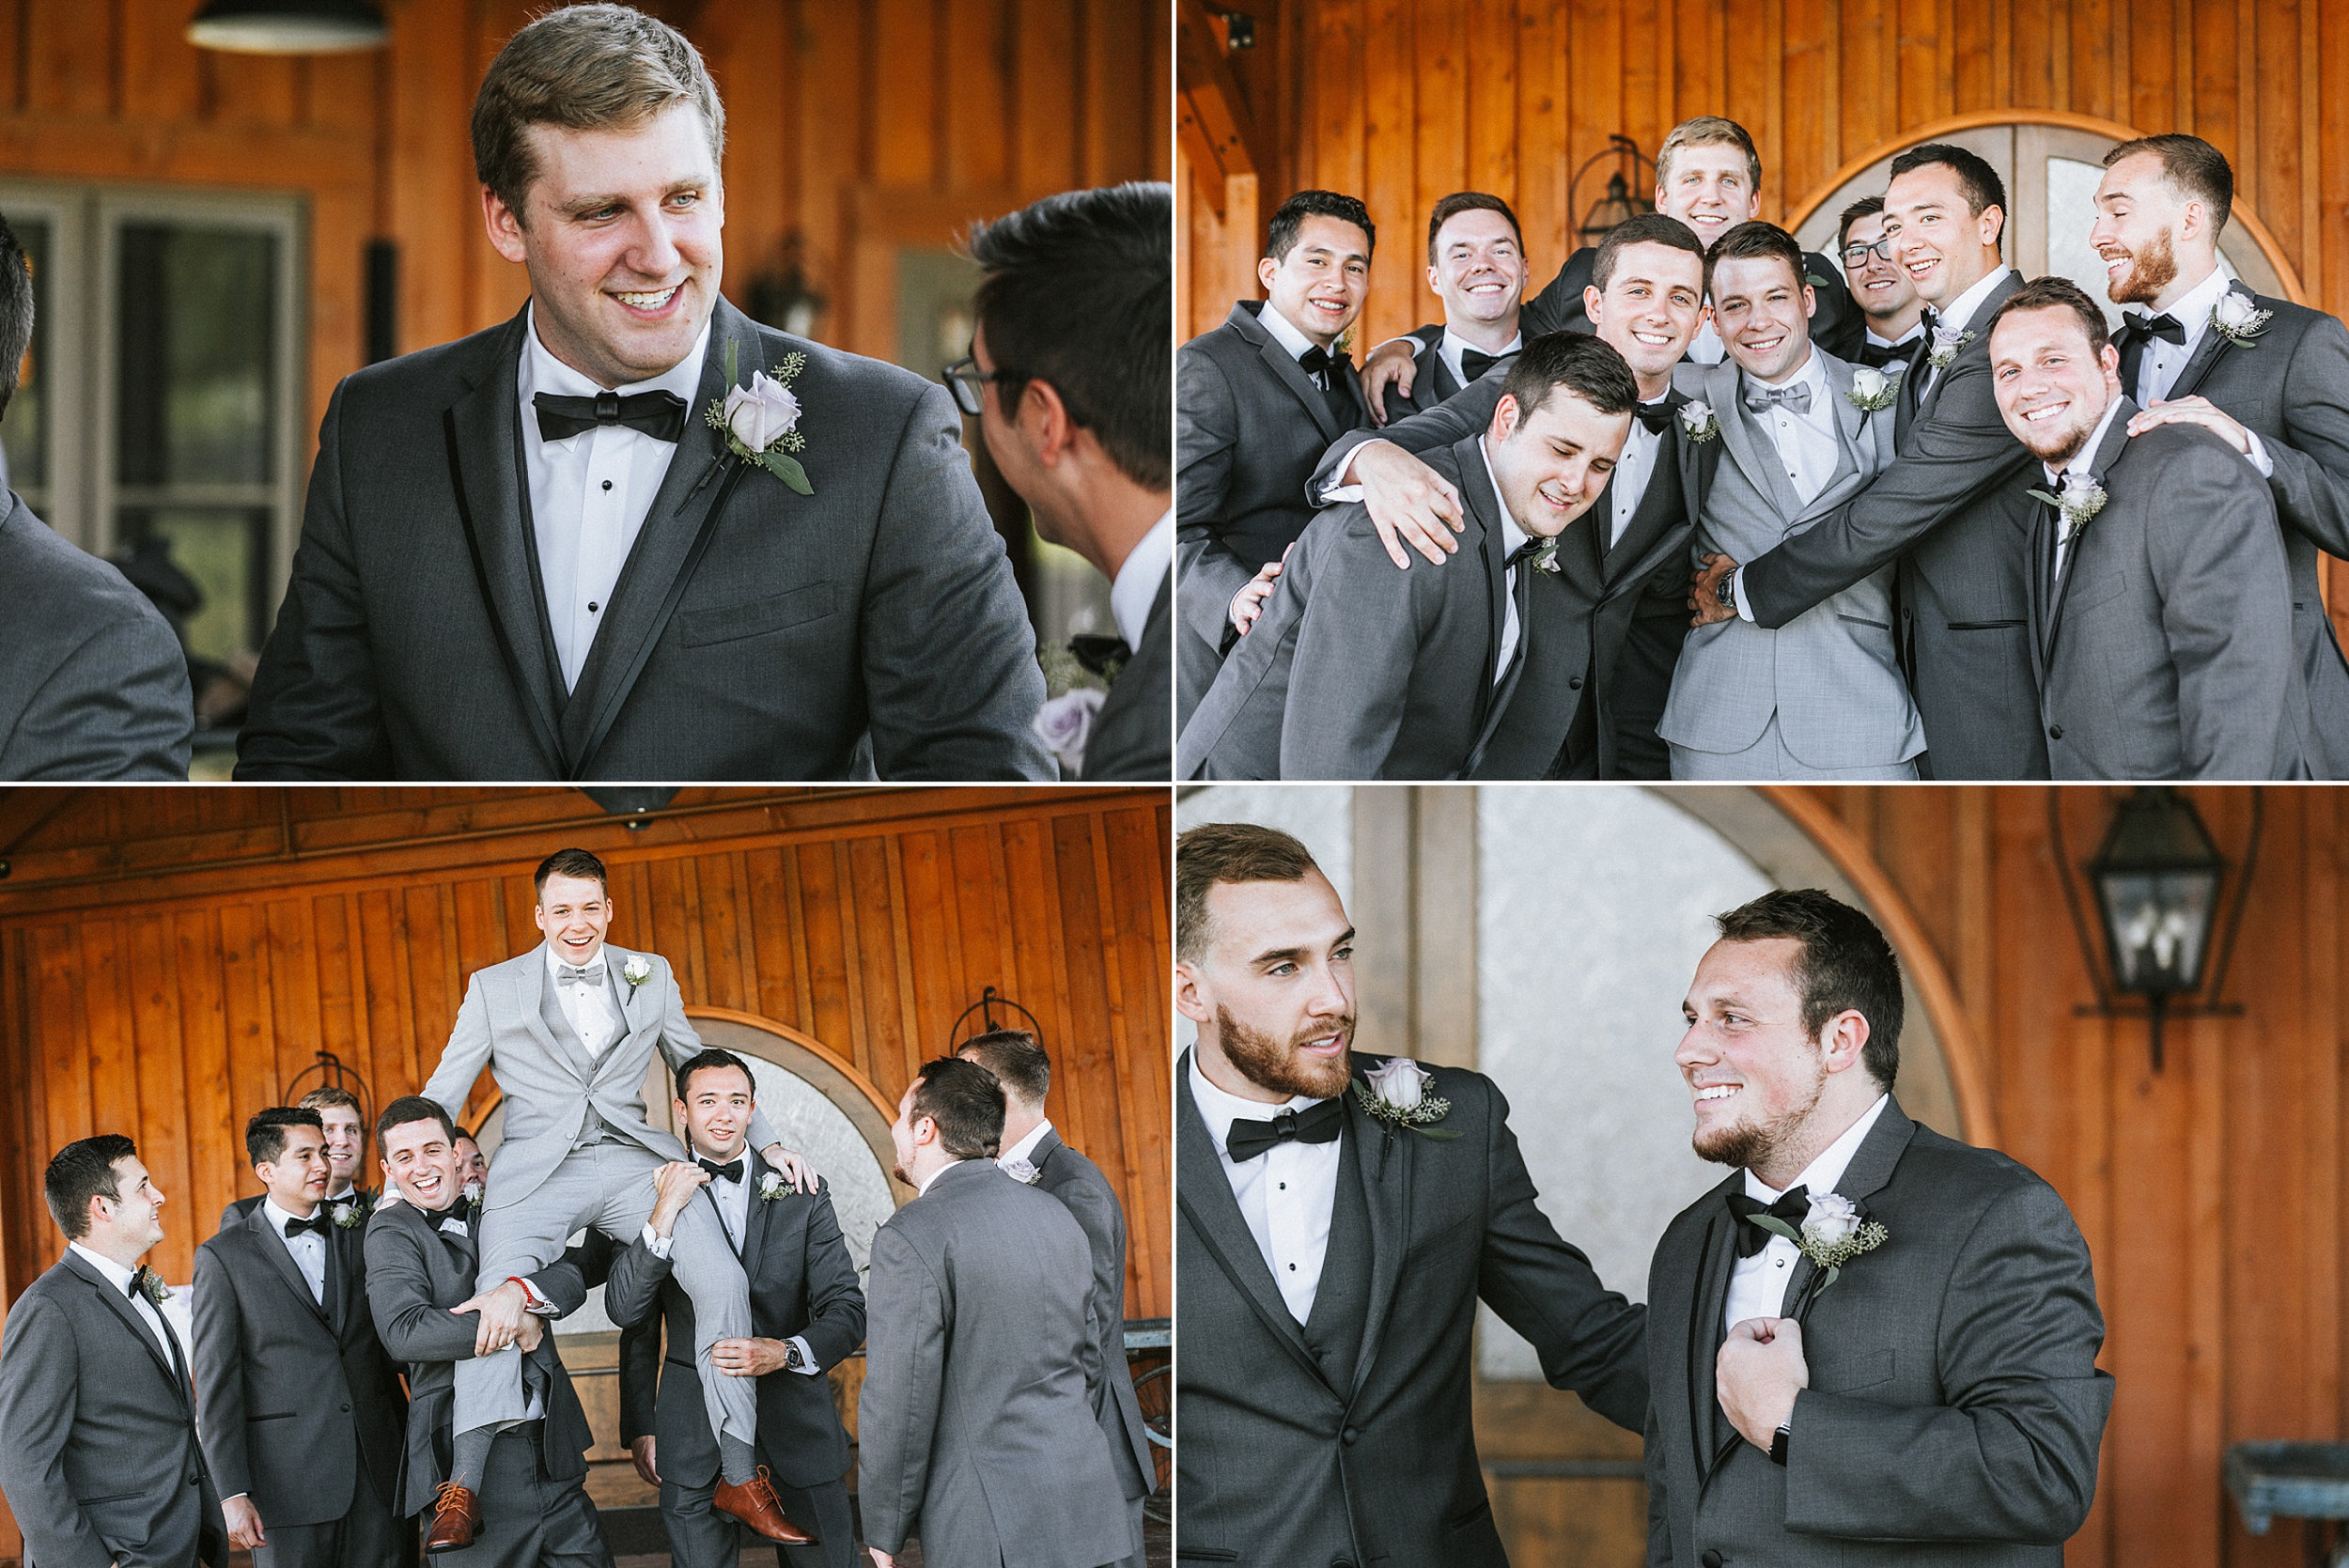 Brooke Townsend Photography - Cincinnati Wedding Photographer (60 of 230).jpg